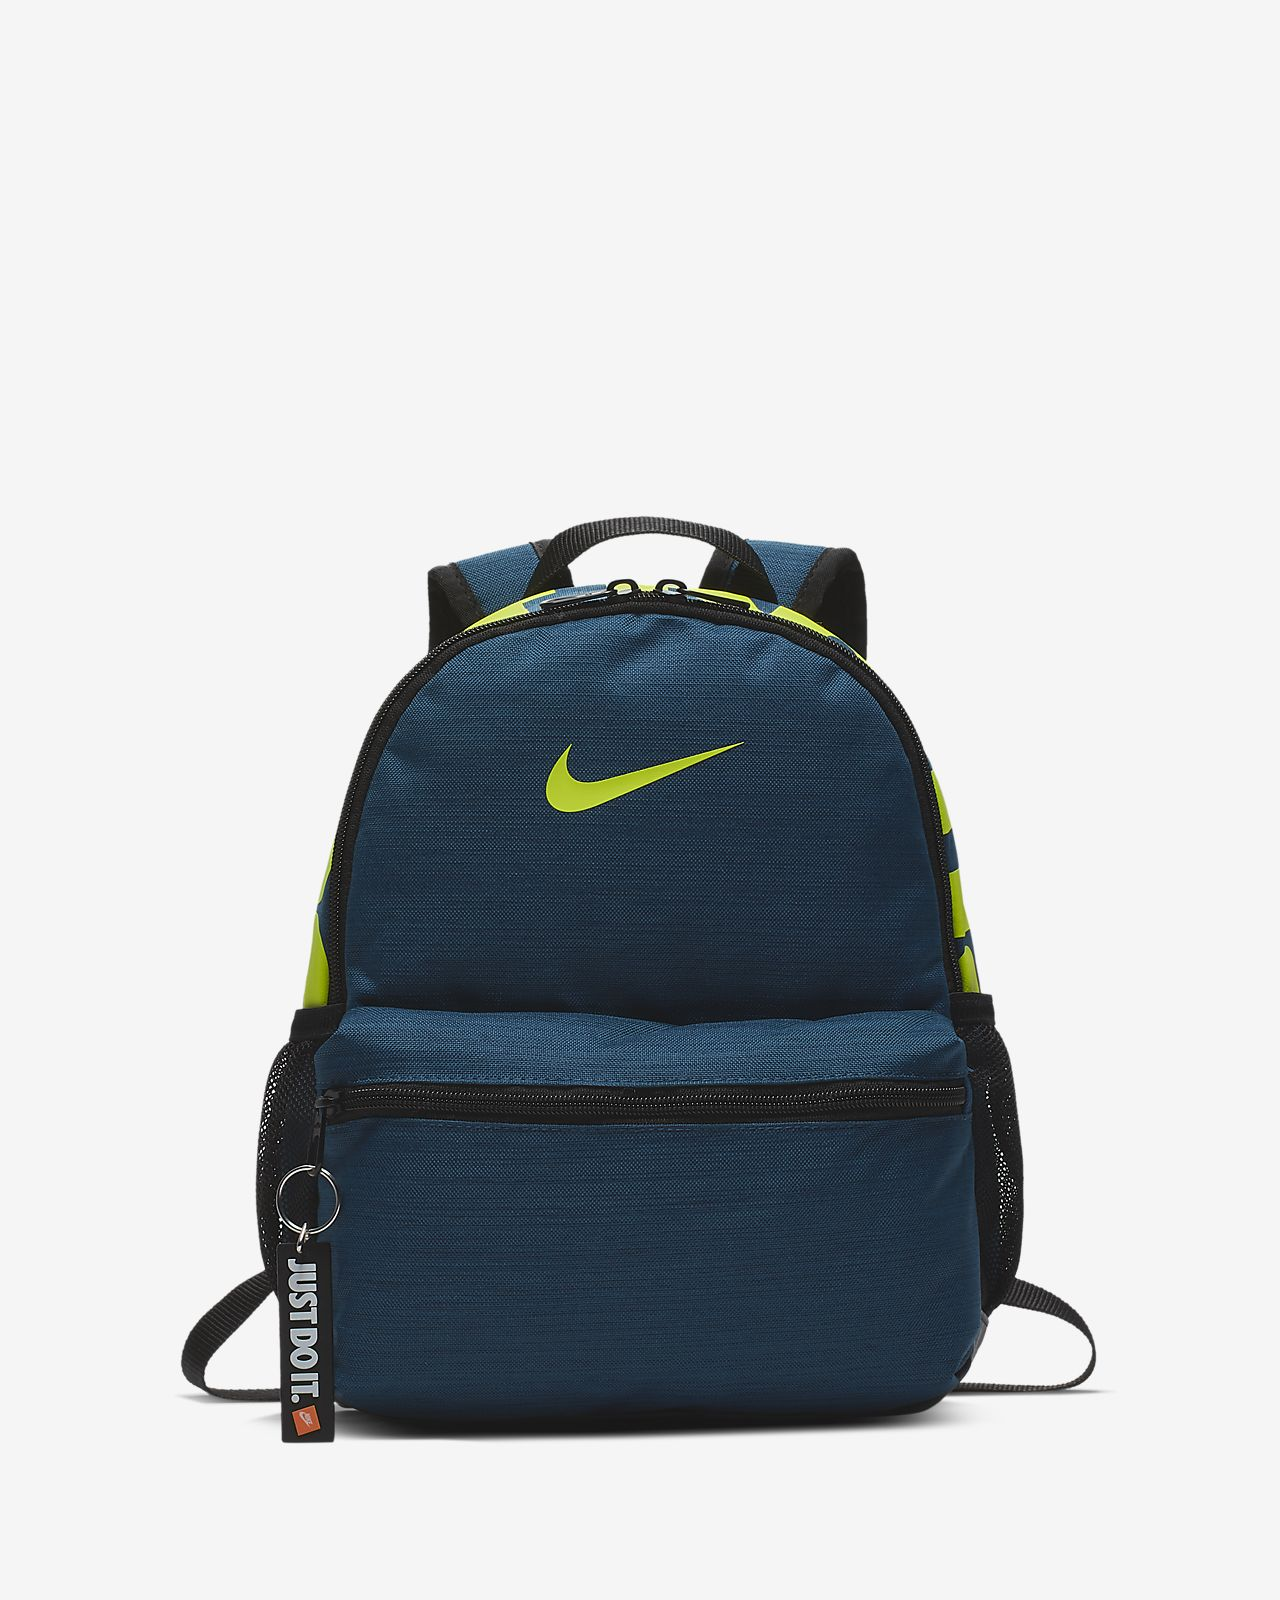 73624b8836 Nike Brasilia Just Do It Kids  Backpack (Mini). Nike.com GB